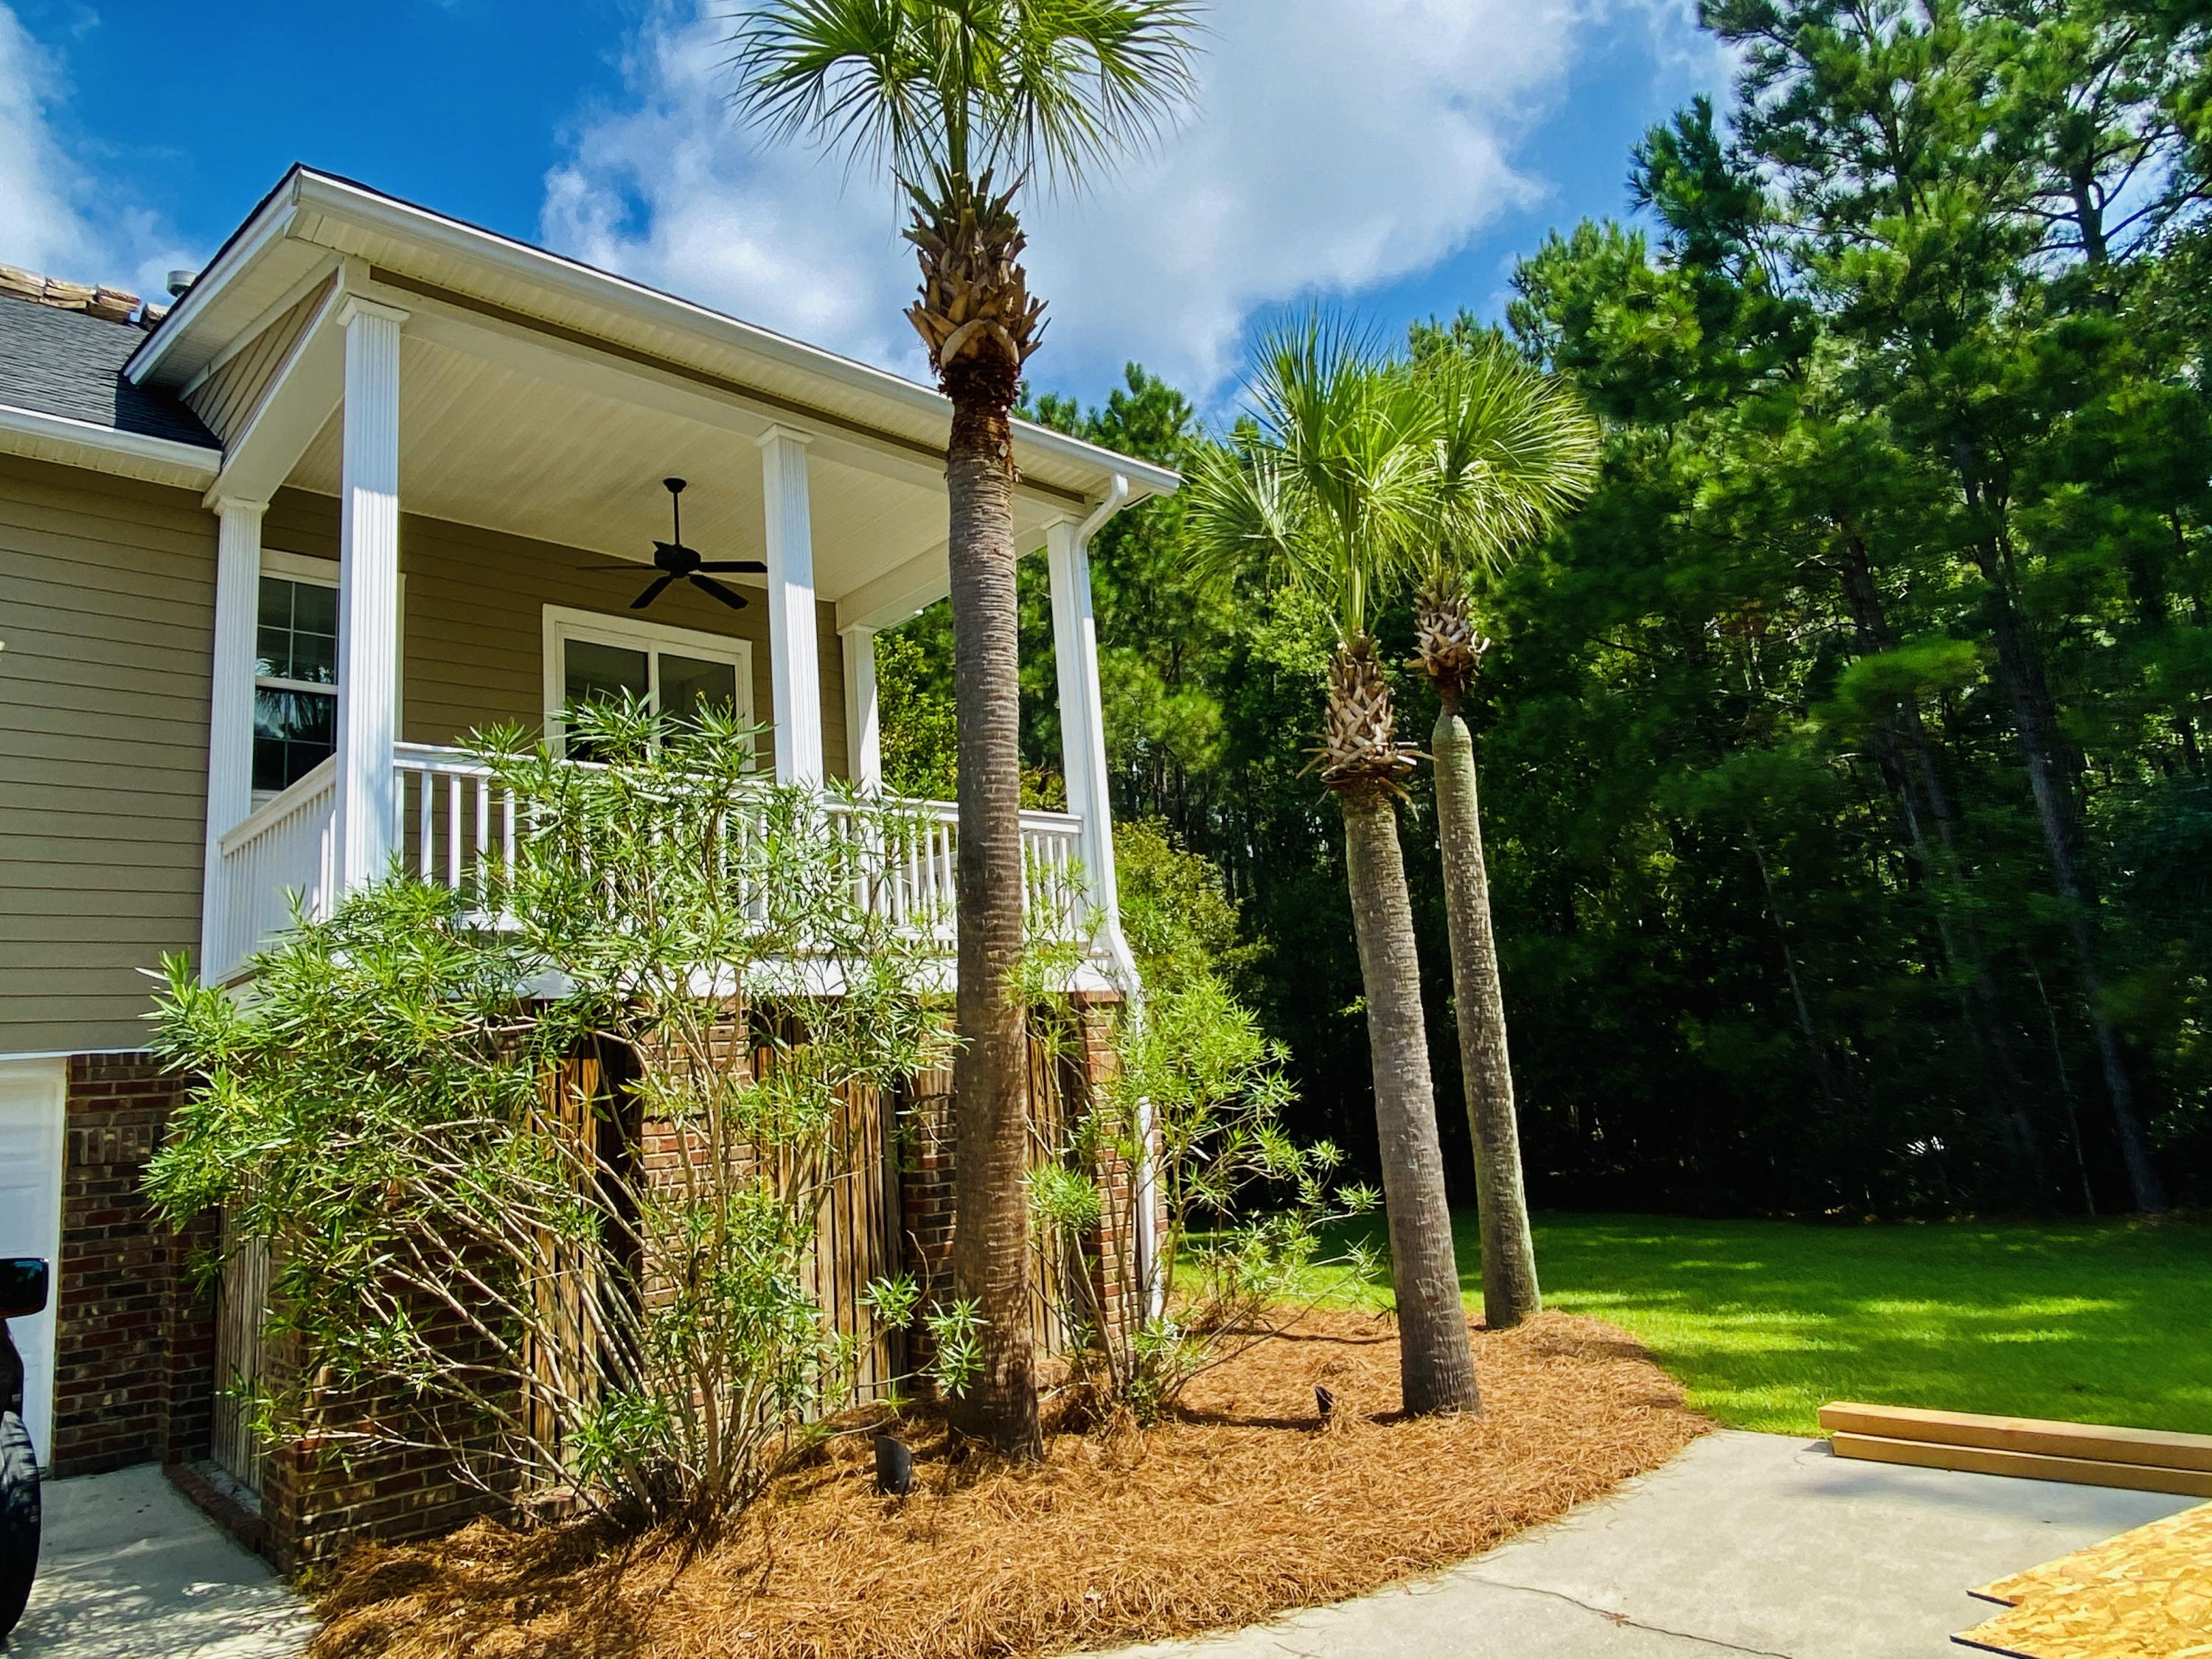 Rivertowne Country Club Homes For Sale - 1721 Rivertowne Country Club, Mount Pleasant, SC - 7